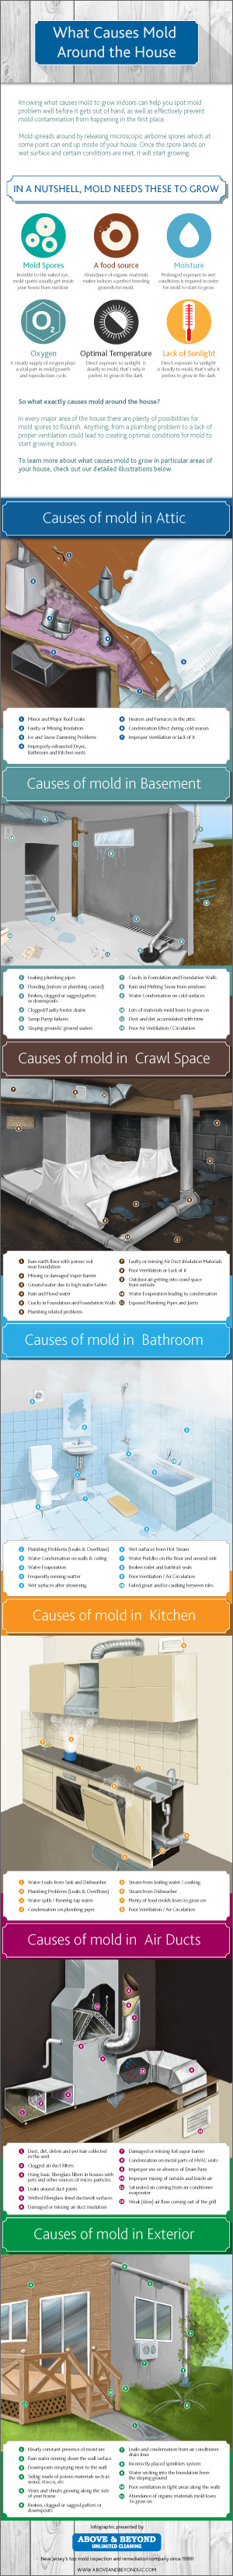 Inforaphic: What causes mold around the house